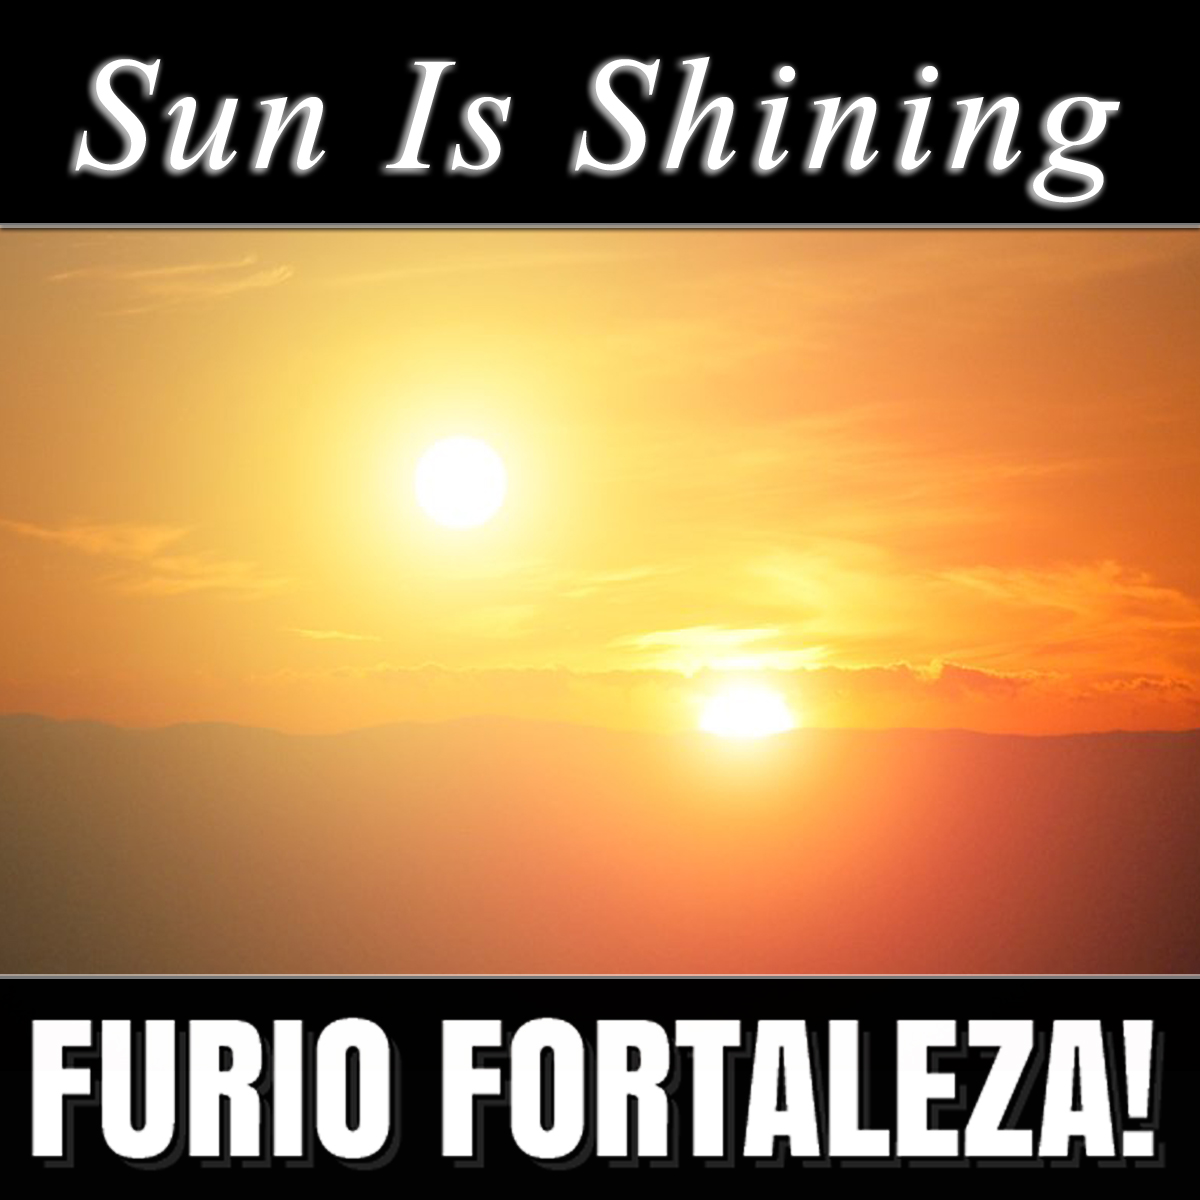 Furio Fortaleza! - 3.7 - Sun is Shining